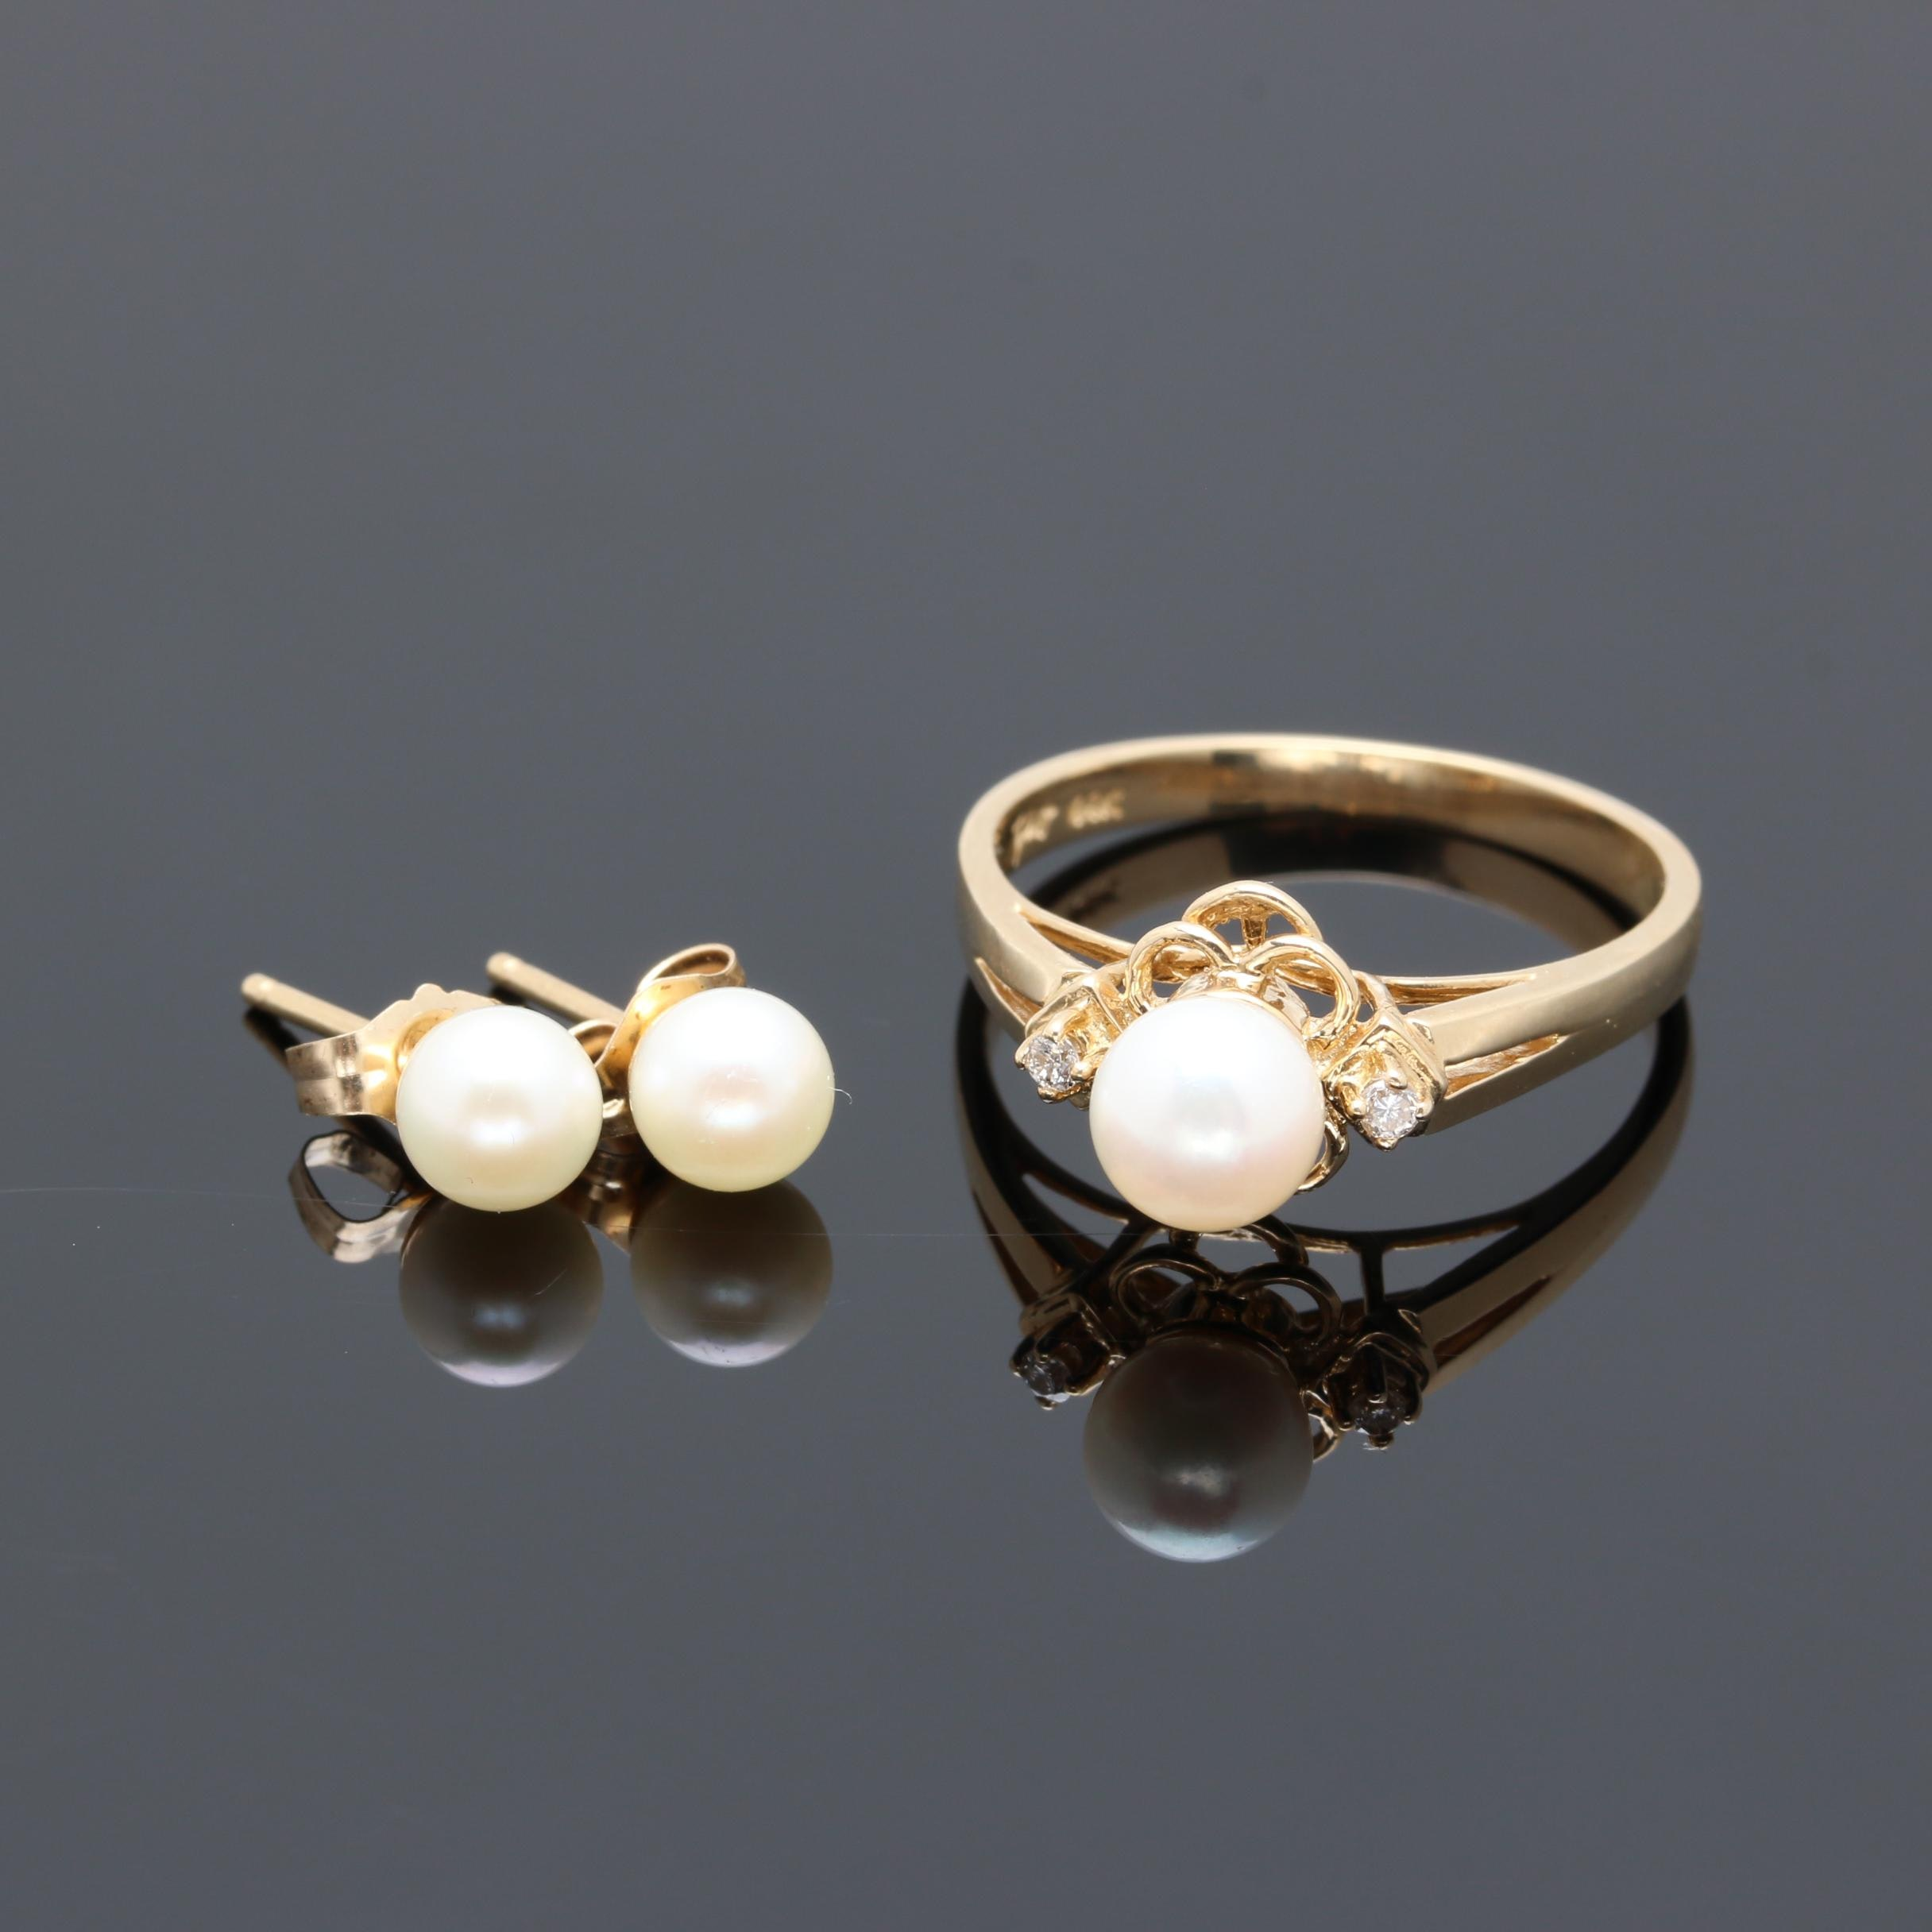 14K Yellow Gold Cultured Pearl and Diamond Ring and Earrings